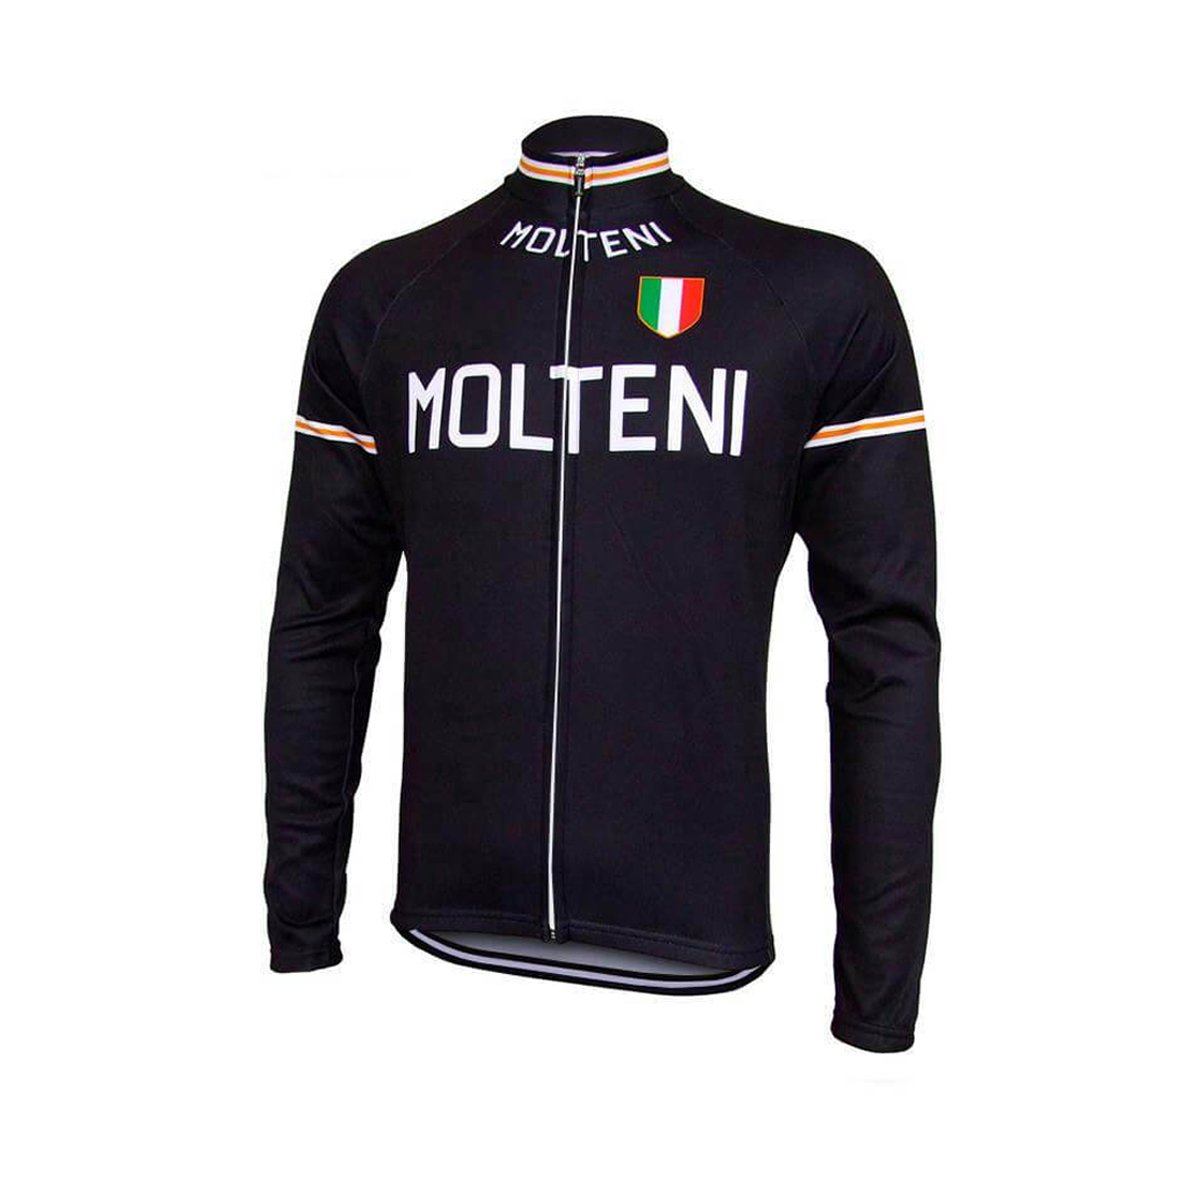 Stylish Full Zipper Long Sleeve Cycling Jersey with Back Pocket